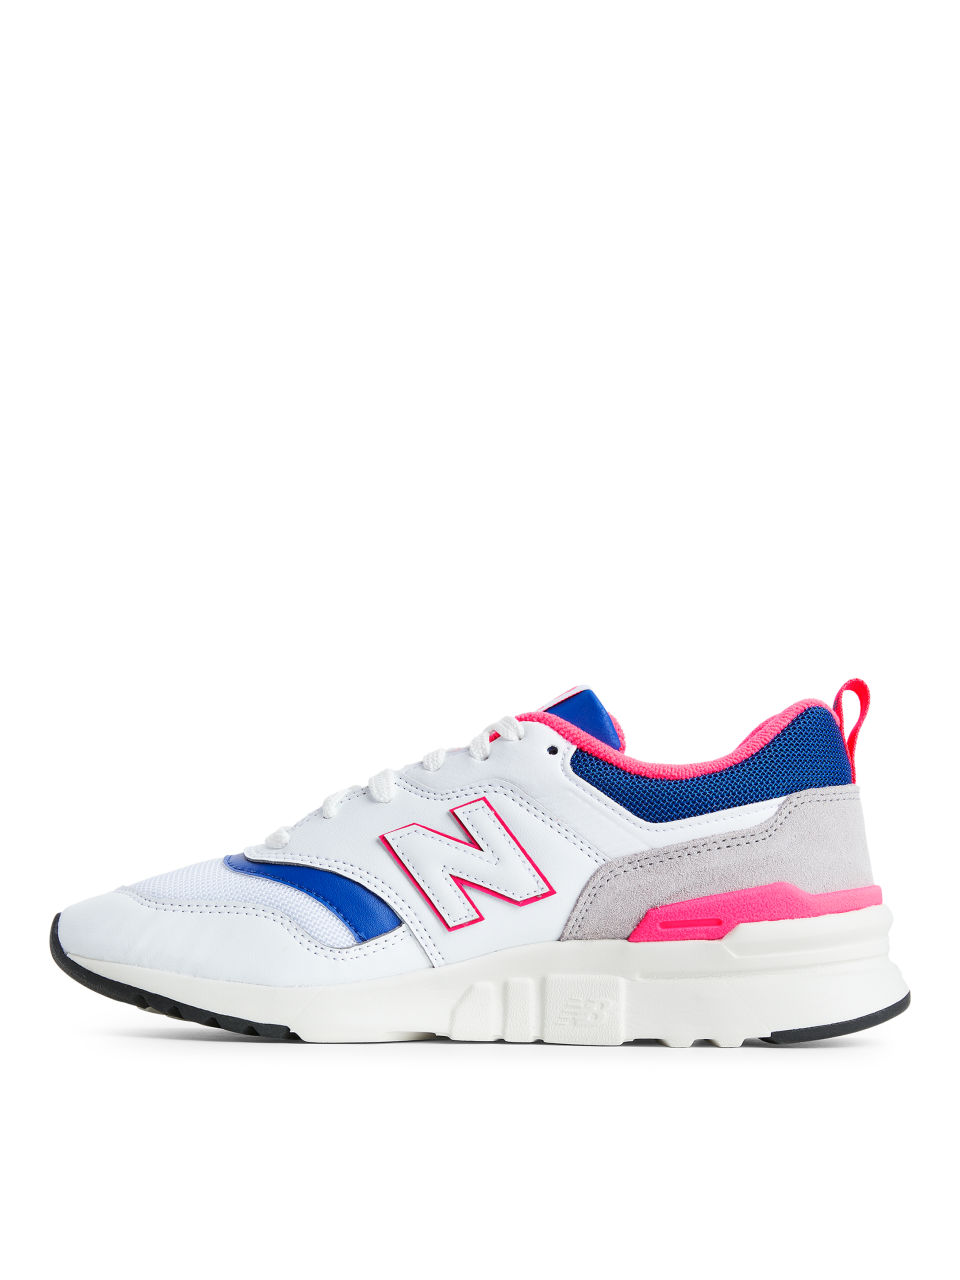 Side image of Arket new balance 997 in white